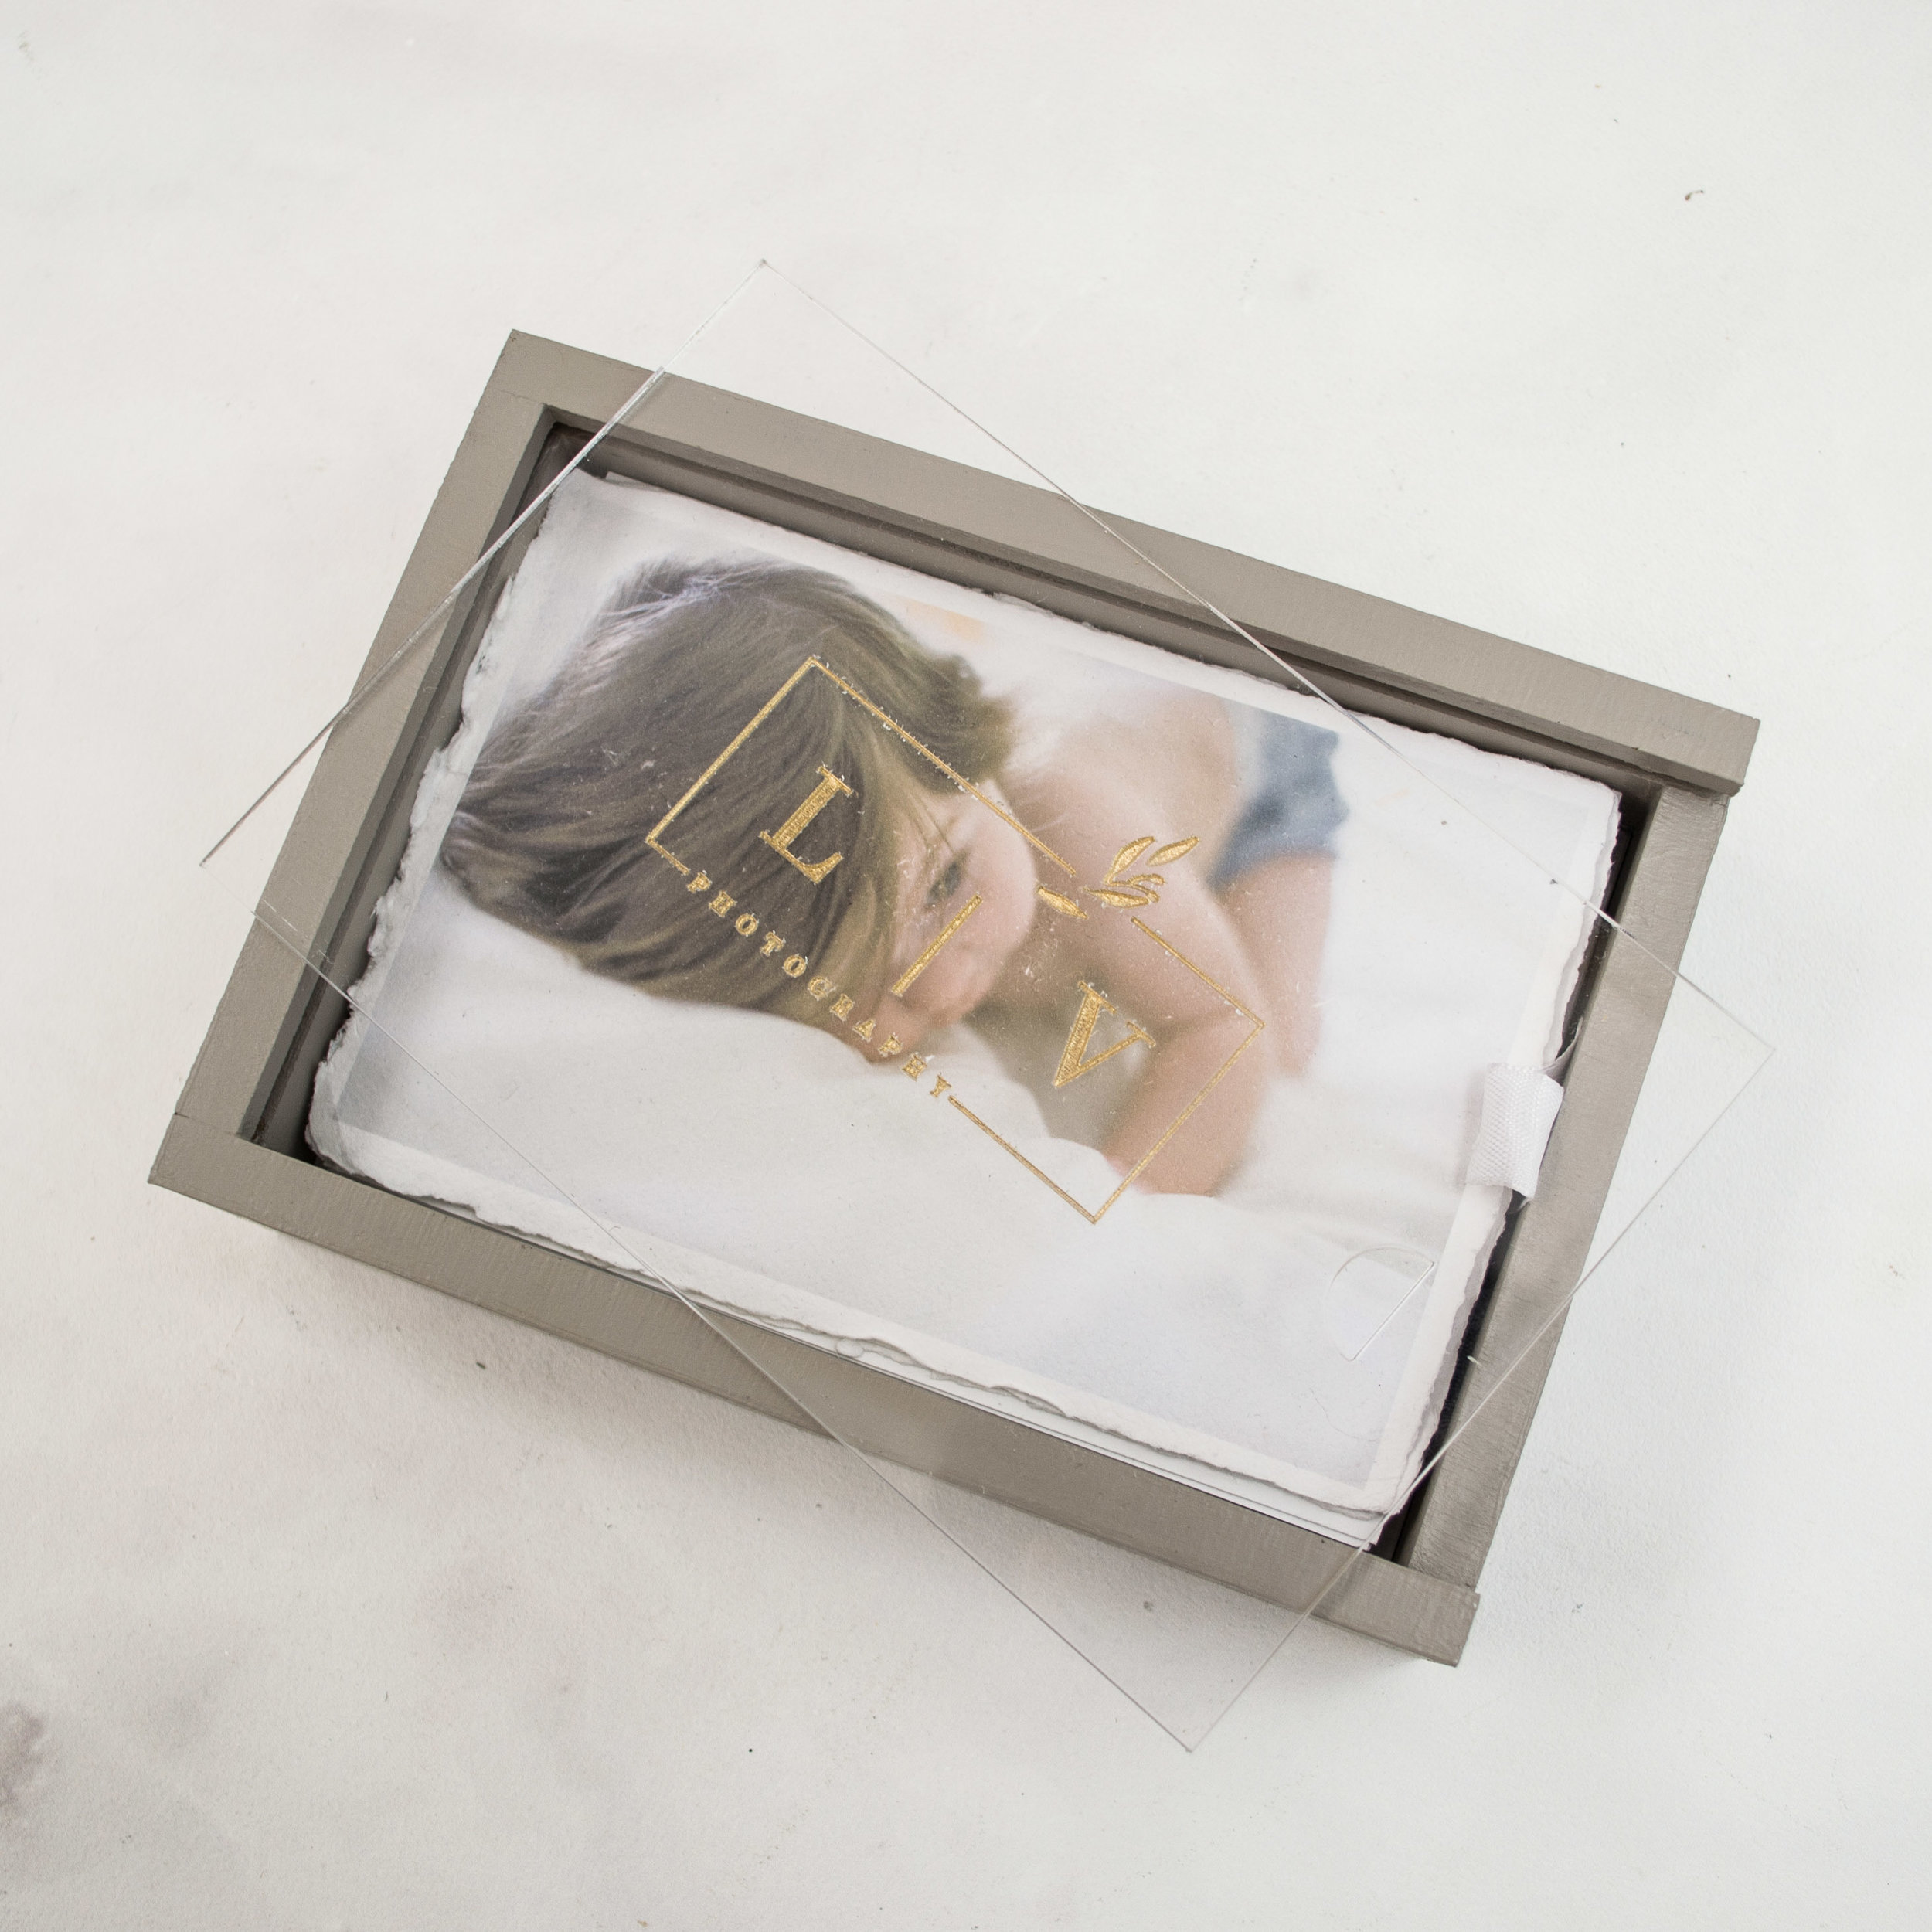 Molly_and_tom_Fine_art_photography_packaging